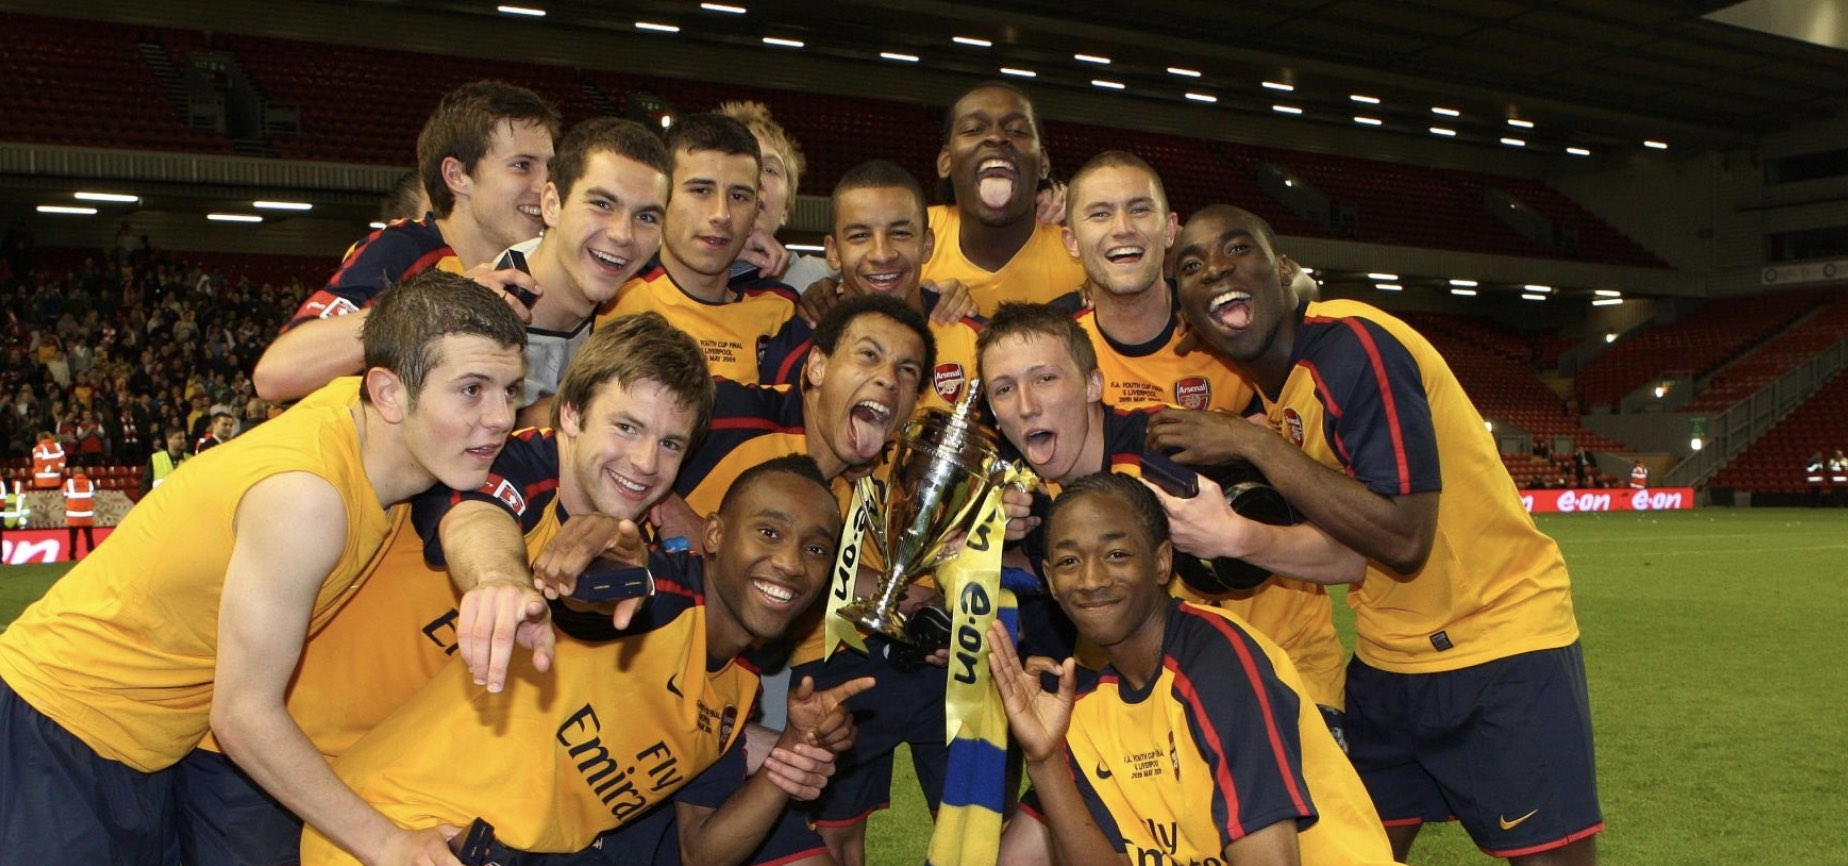 Sanchez Watt and Arsenal teammates celebrate winning the FA Youth Cup in 2009.